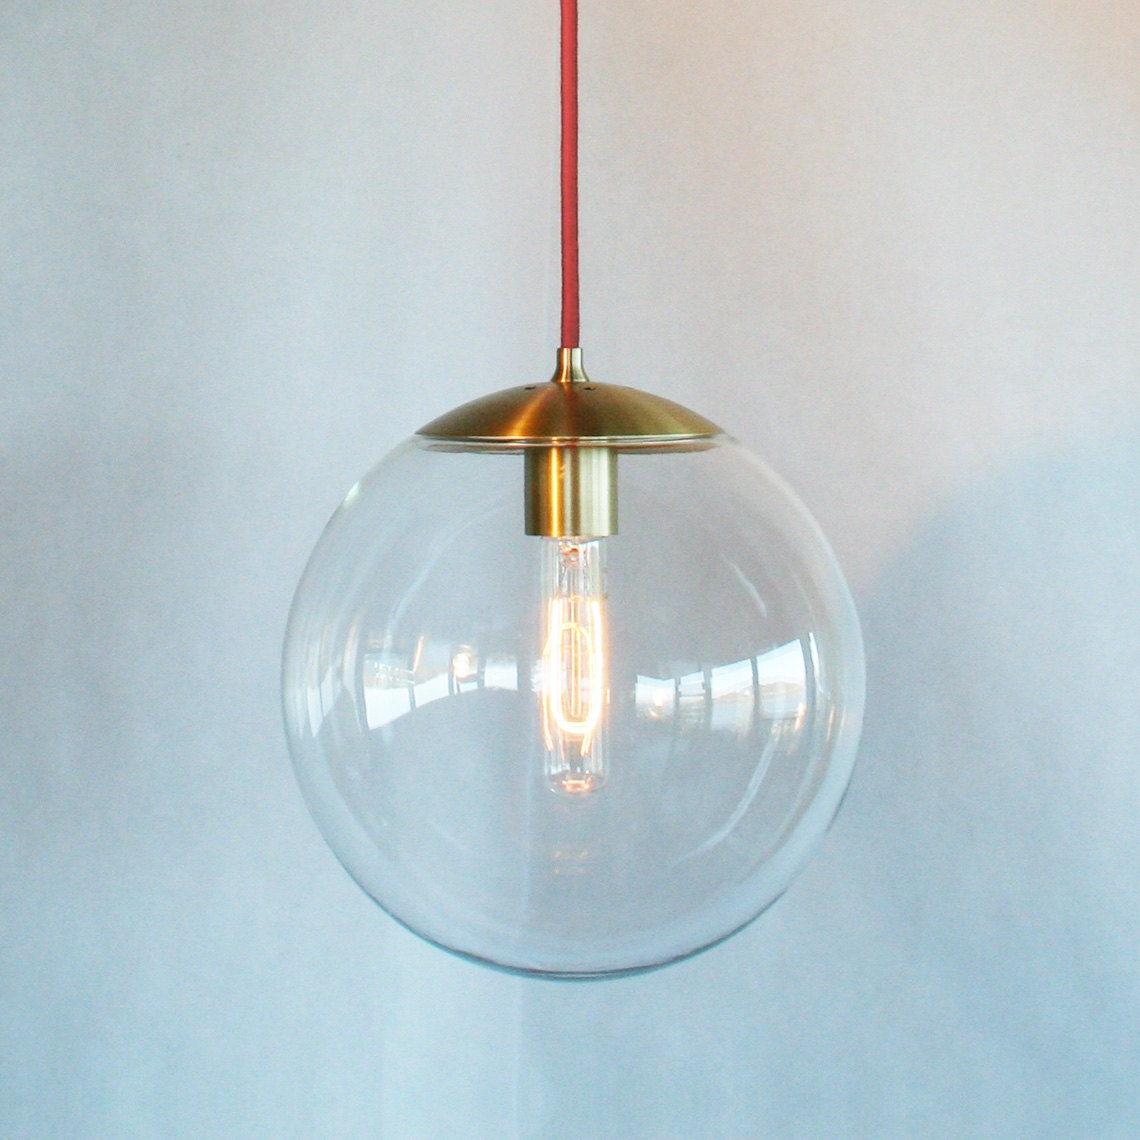 Modern mid century globe pendant light clear 10 globe for Mid century modern globe pendant light